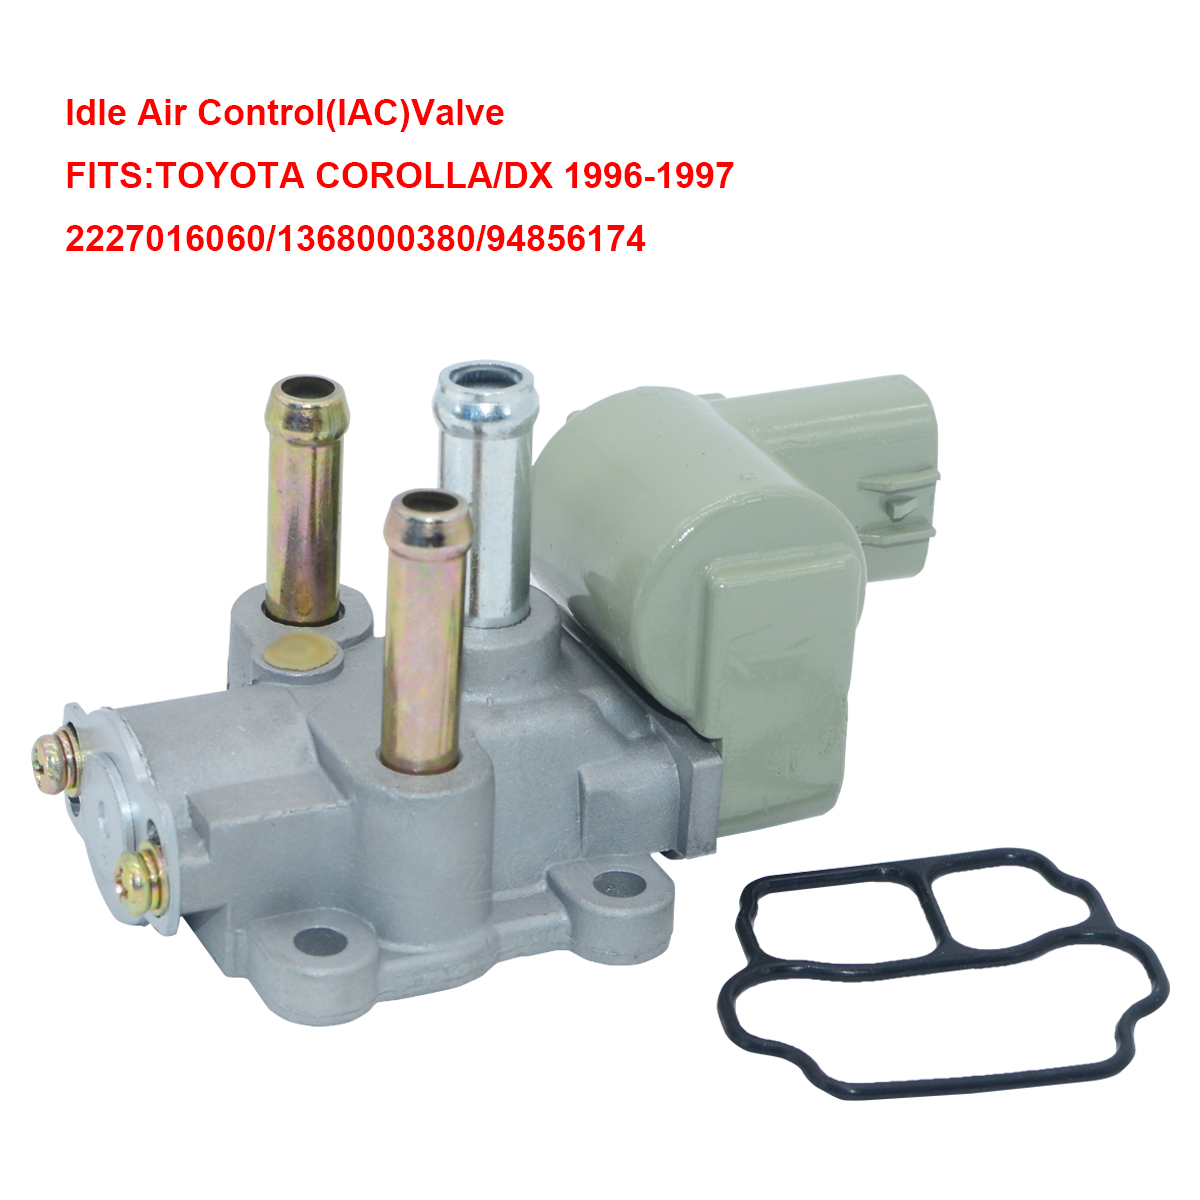 hight resolution of 1pcs oem idle air control valve 22270 16060 for geo prizm toyota celica corolla